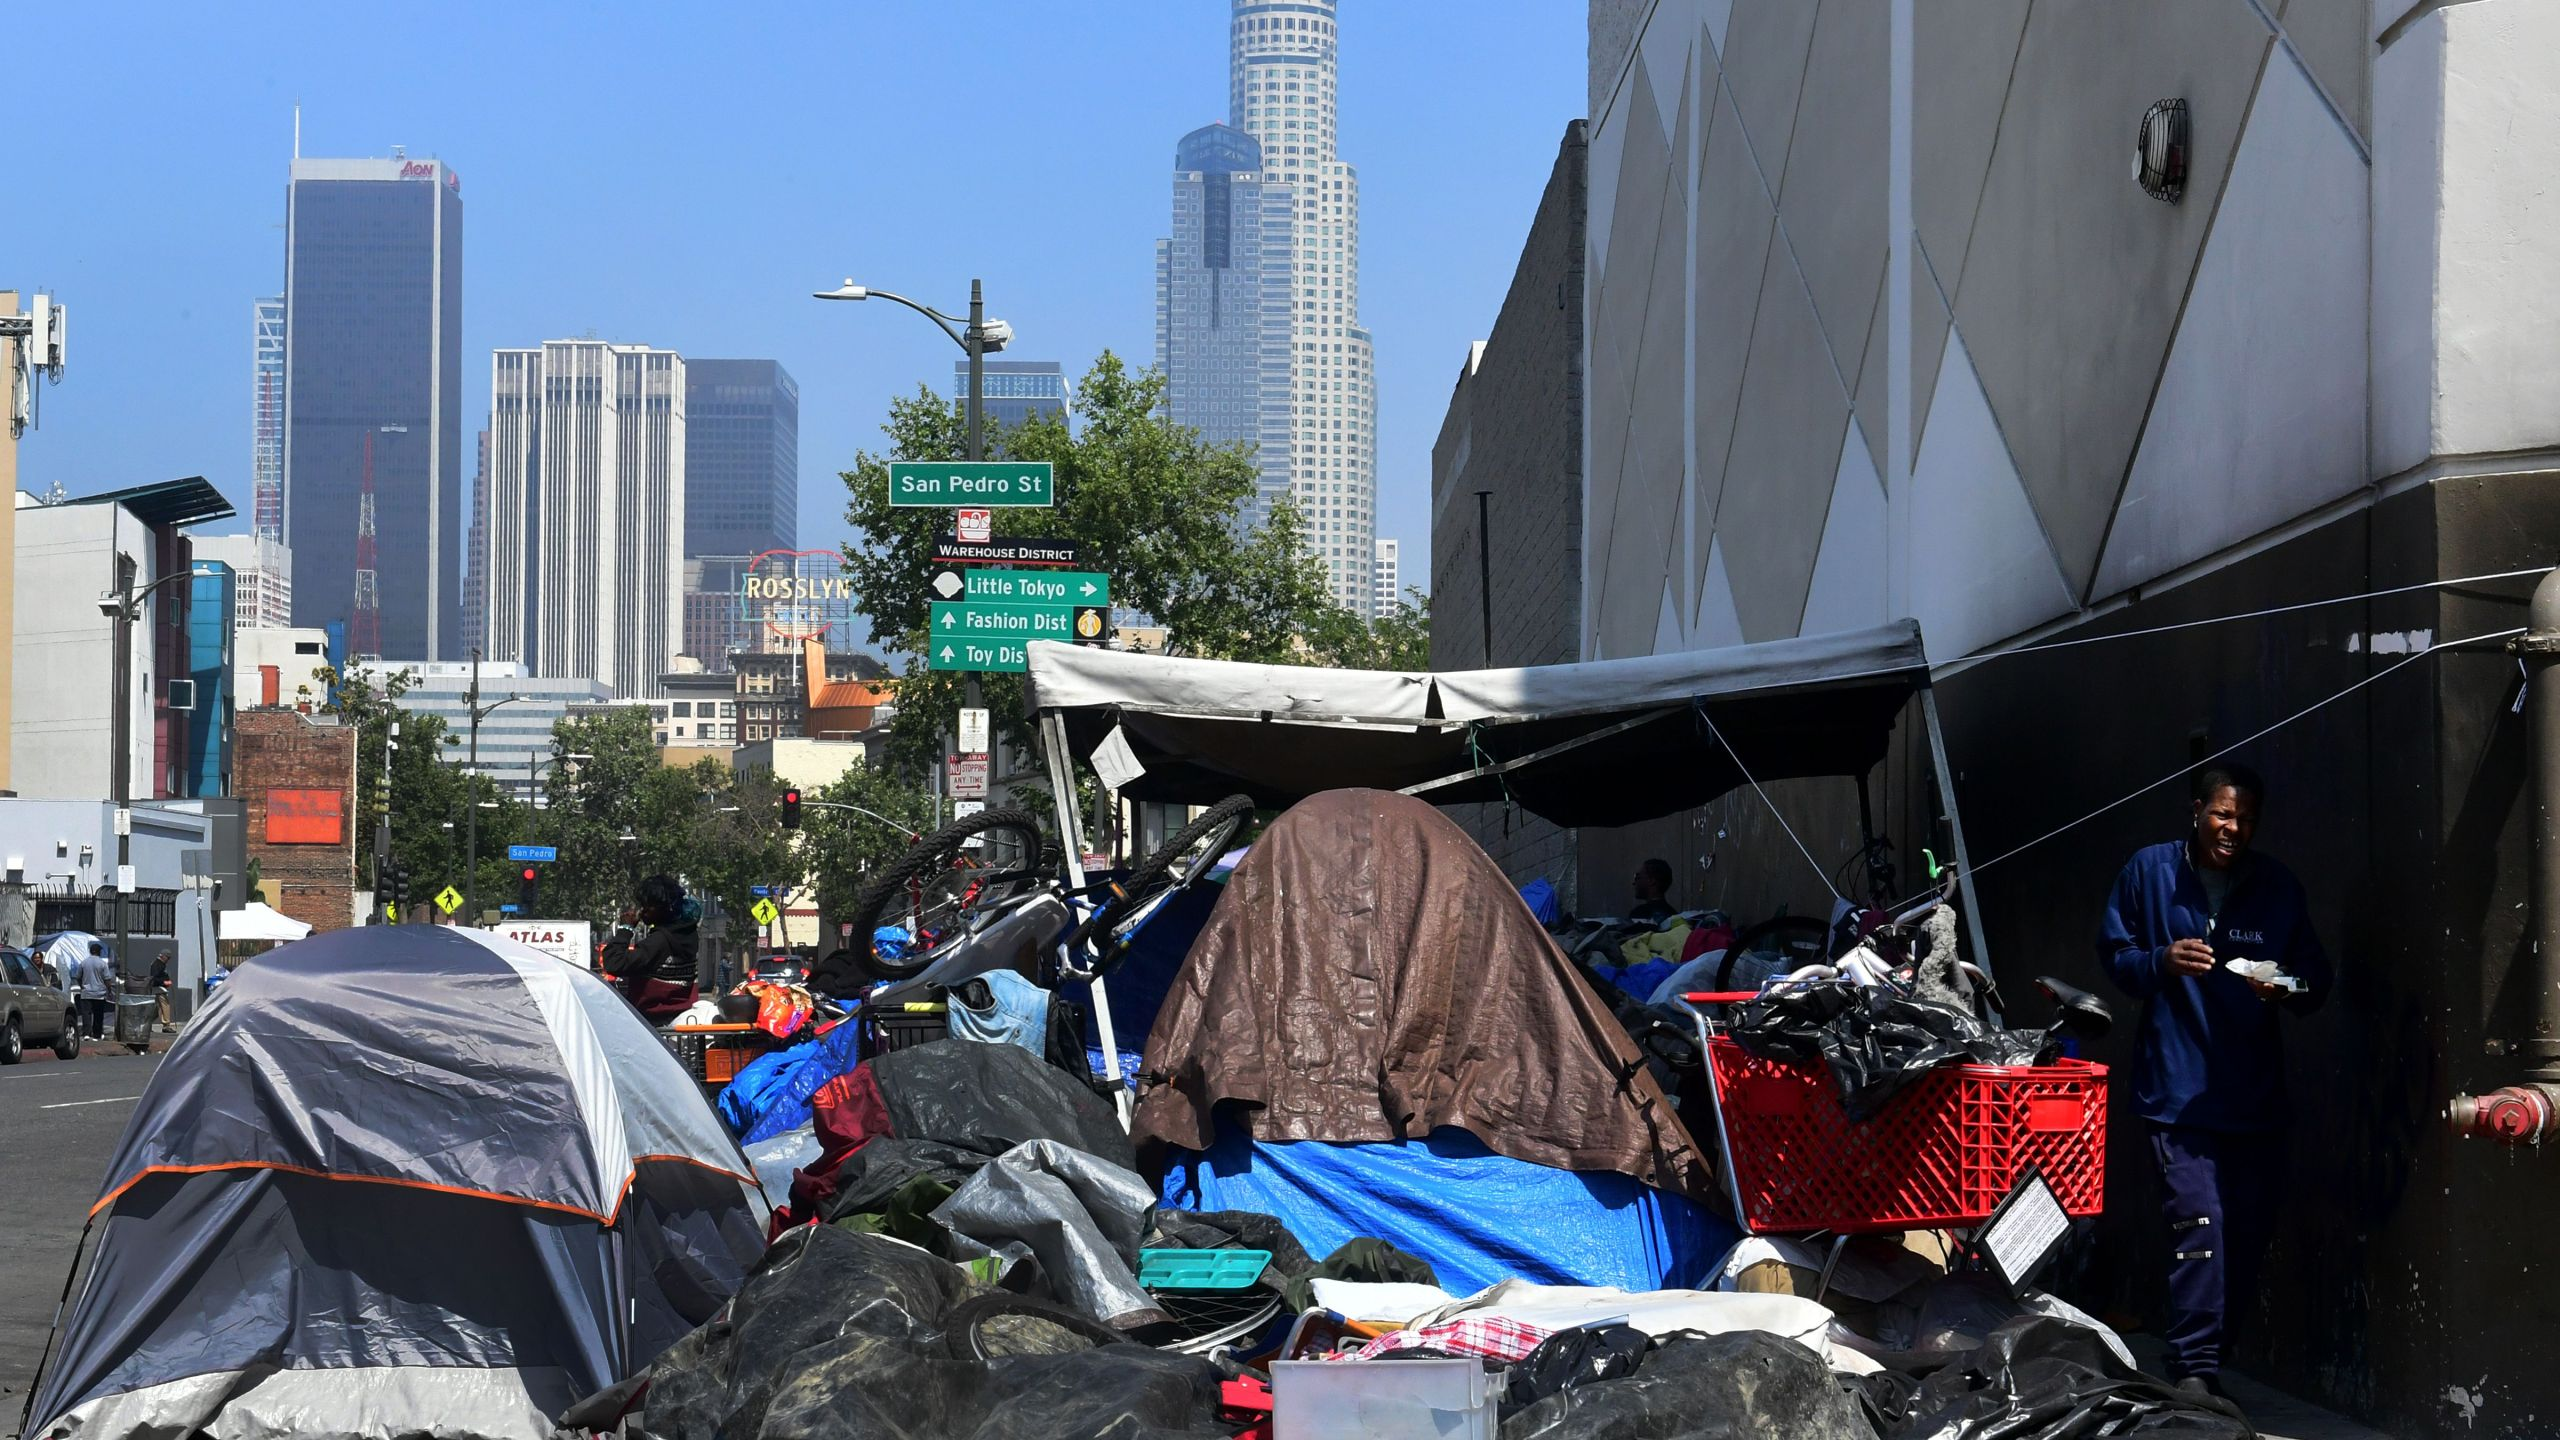 Belongings of the homeless are seen on a downtown L.A. sidewalk on Skid Row on May 30, 2019. (Credit: FREDERIC J. BROWN/AFP/Getty Images)